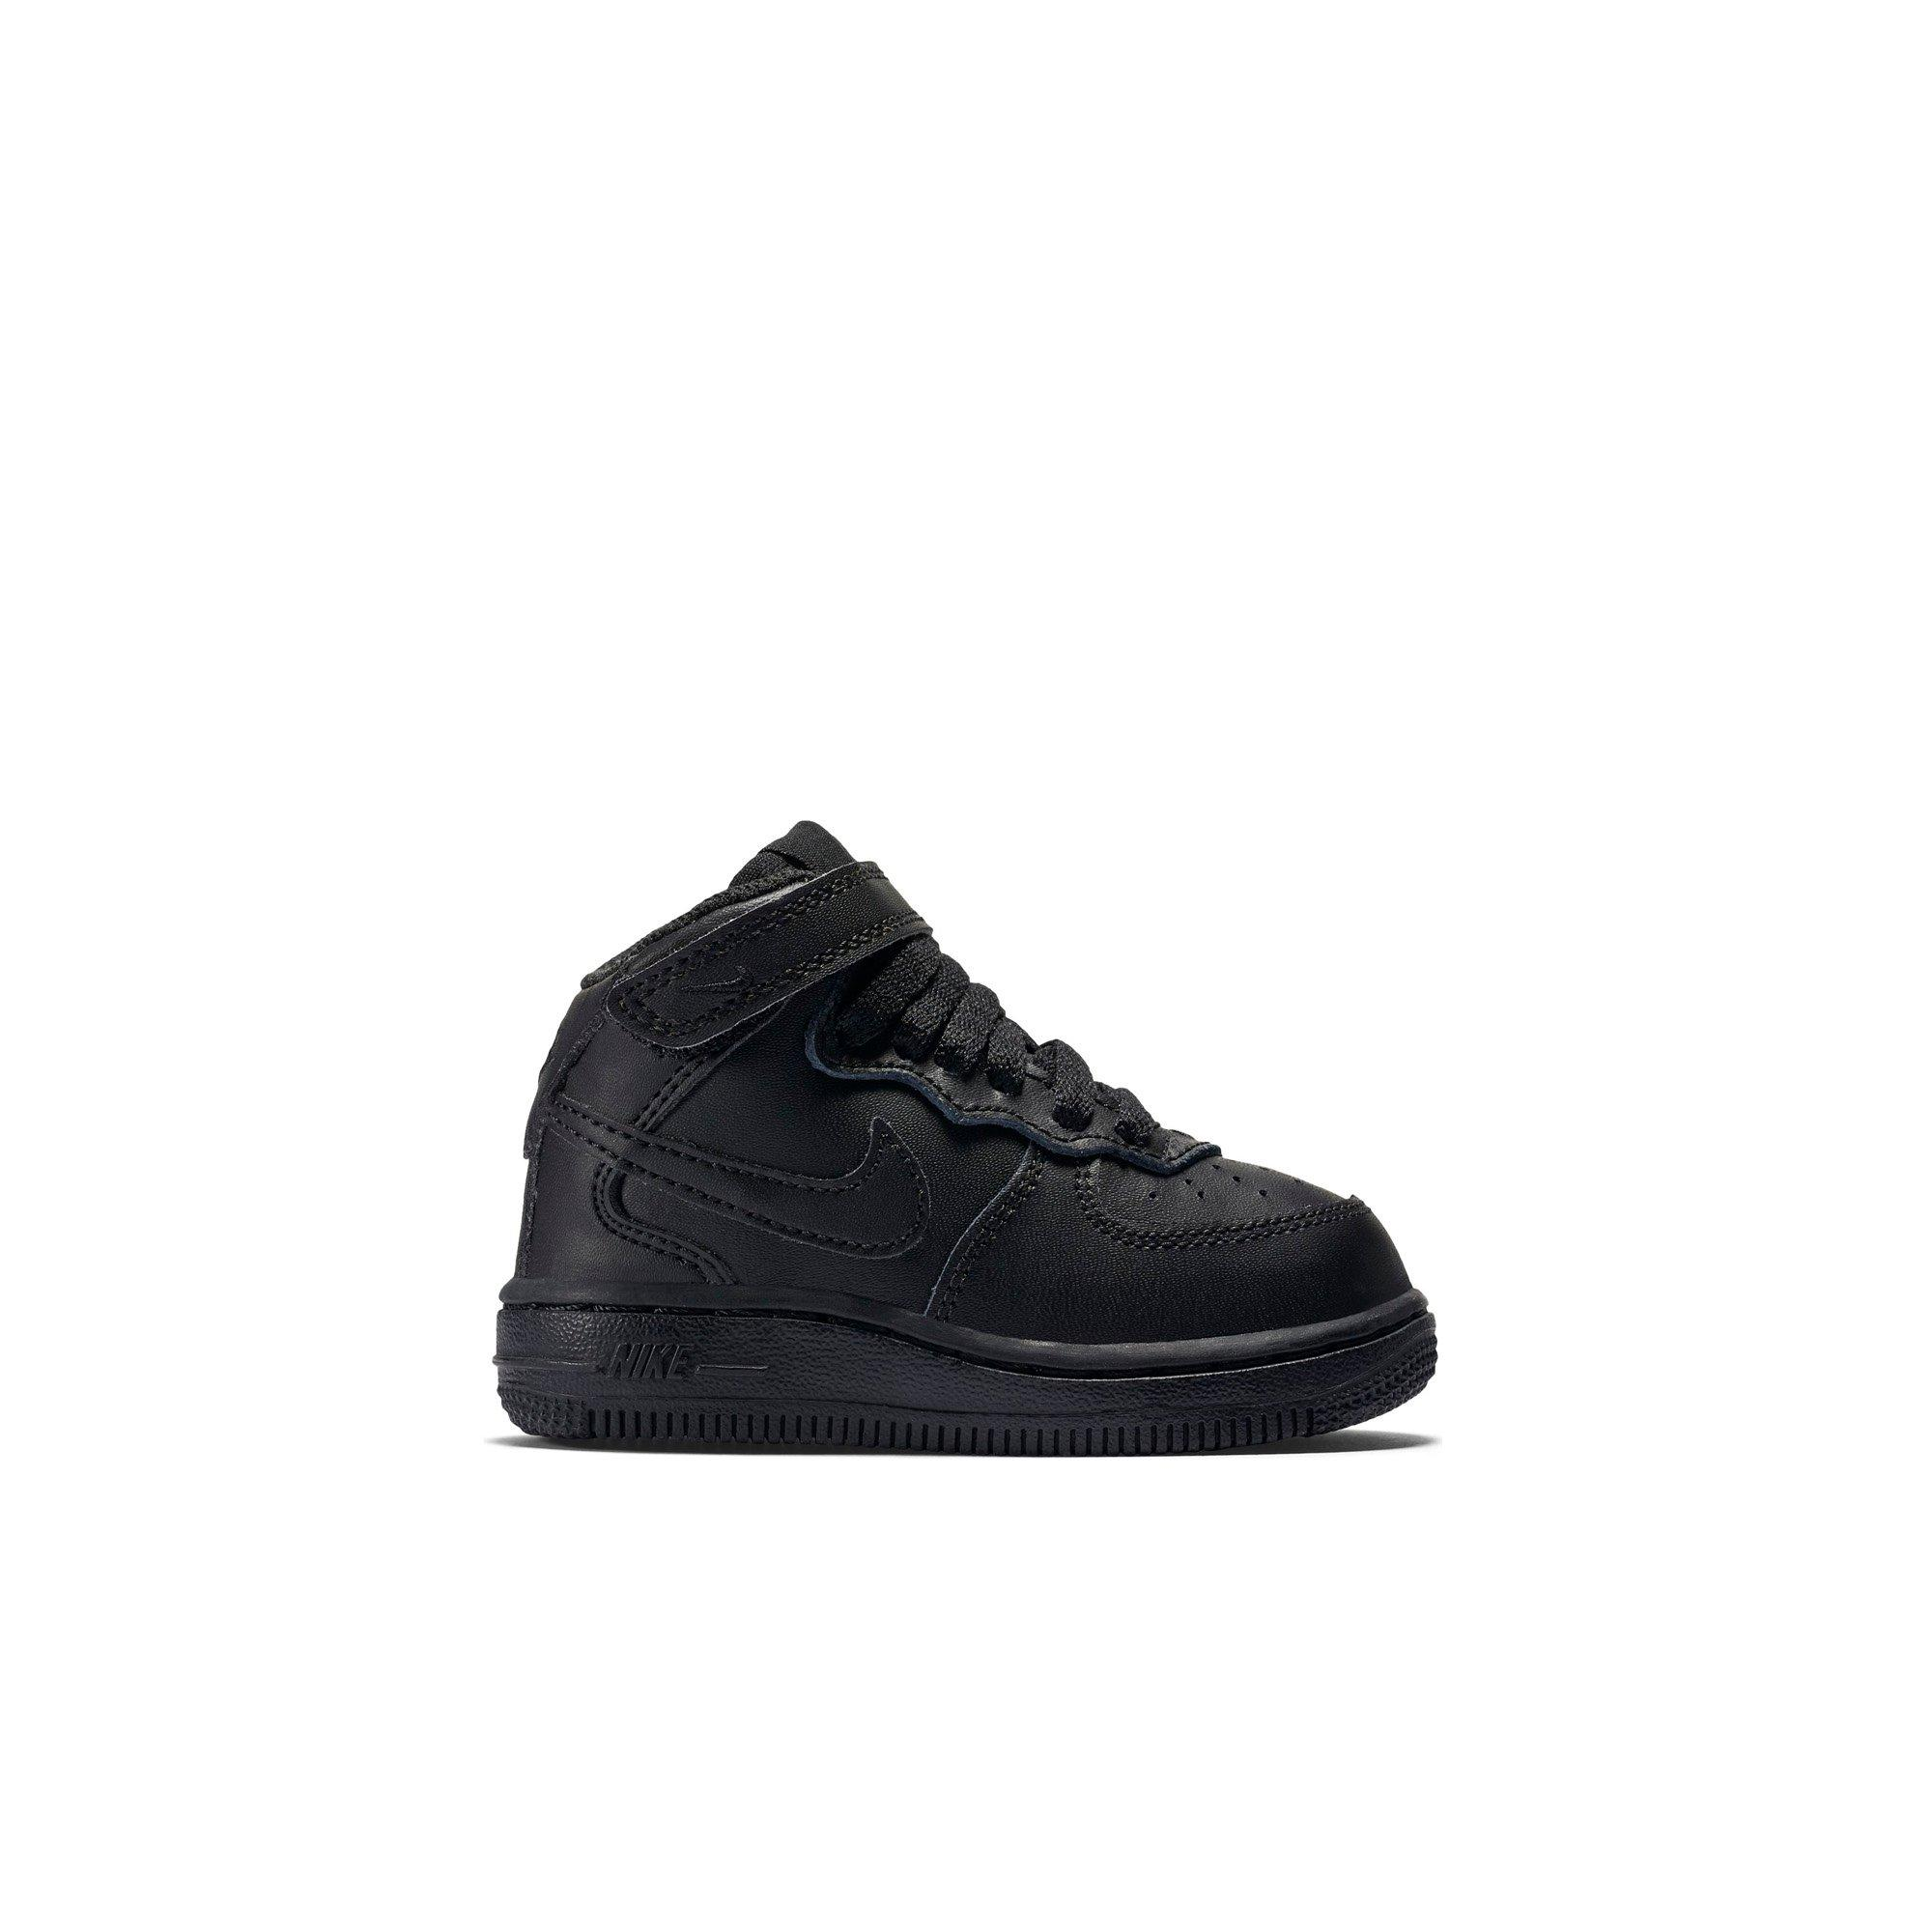 release date 577d0 83081 Nike Air Force 1 Mid Toddler Kids u0027 Basketball Shoes - Main Container  Image 1